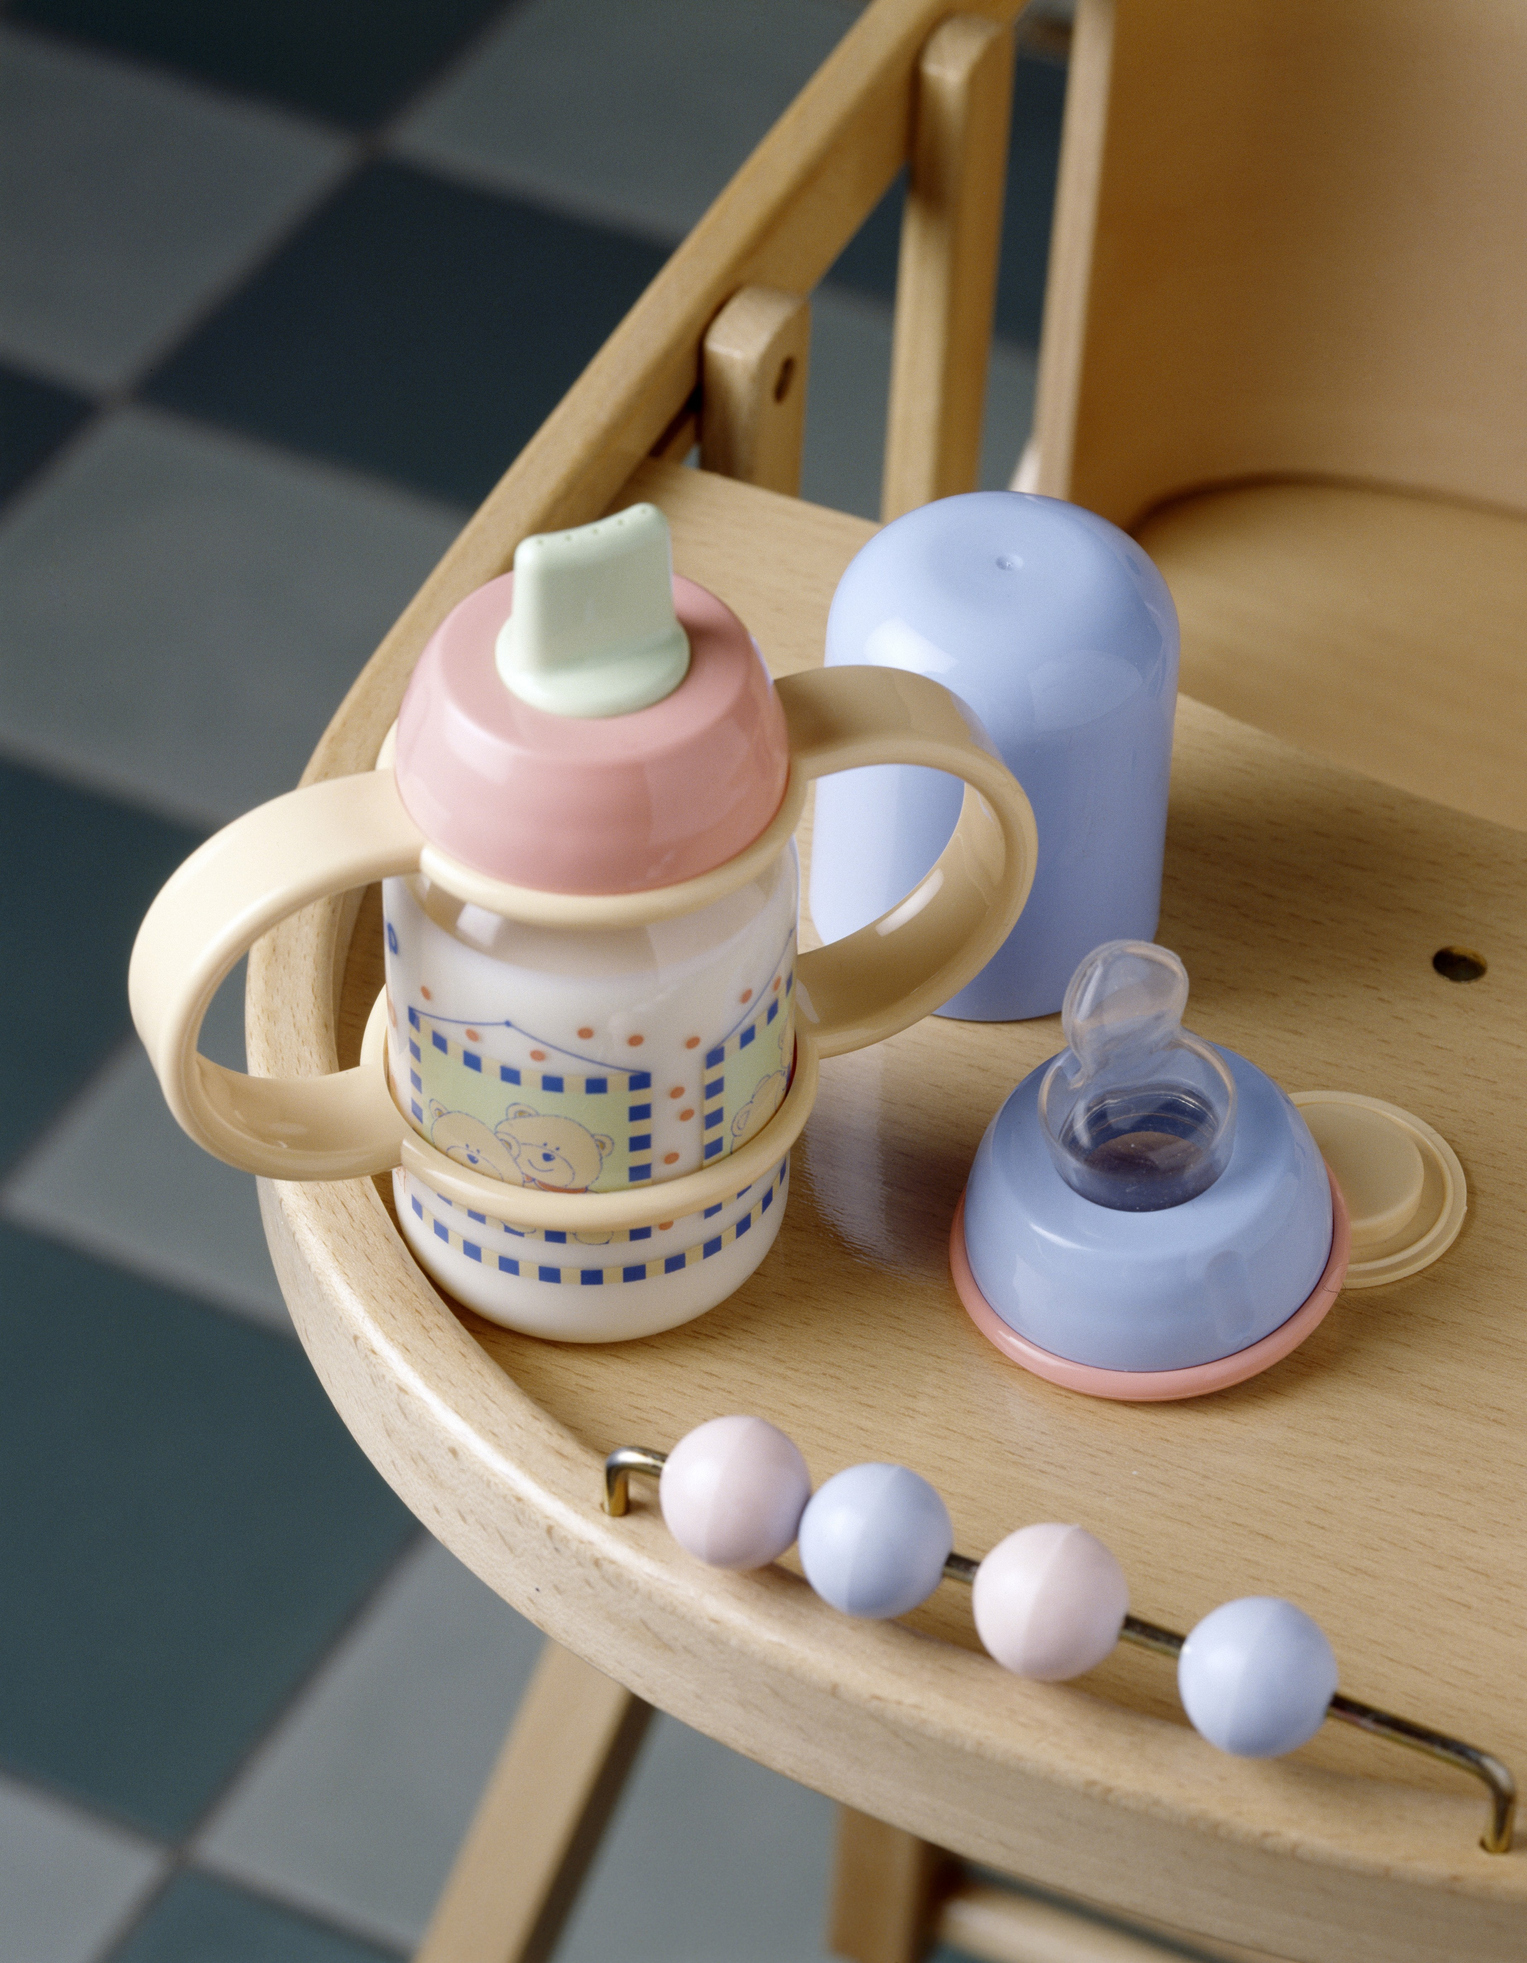 Baby bottle full of milk on a high chair